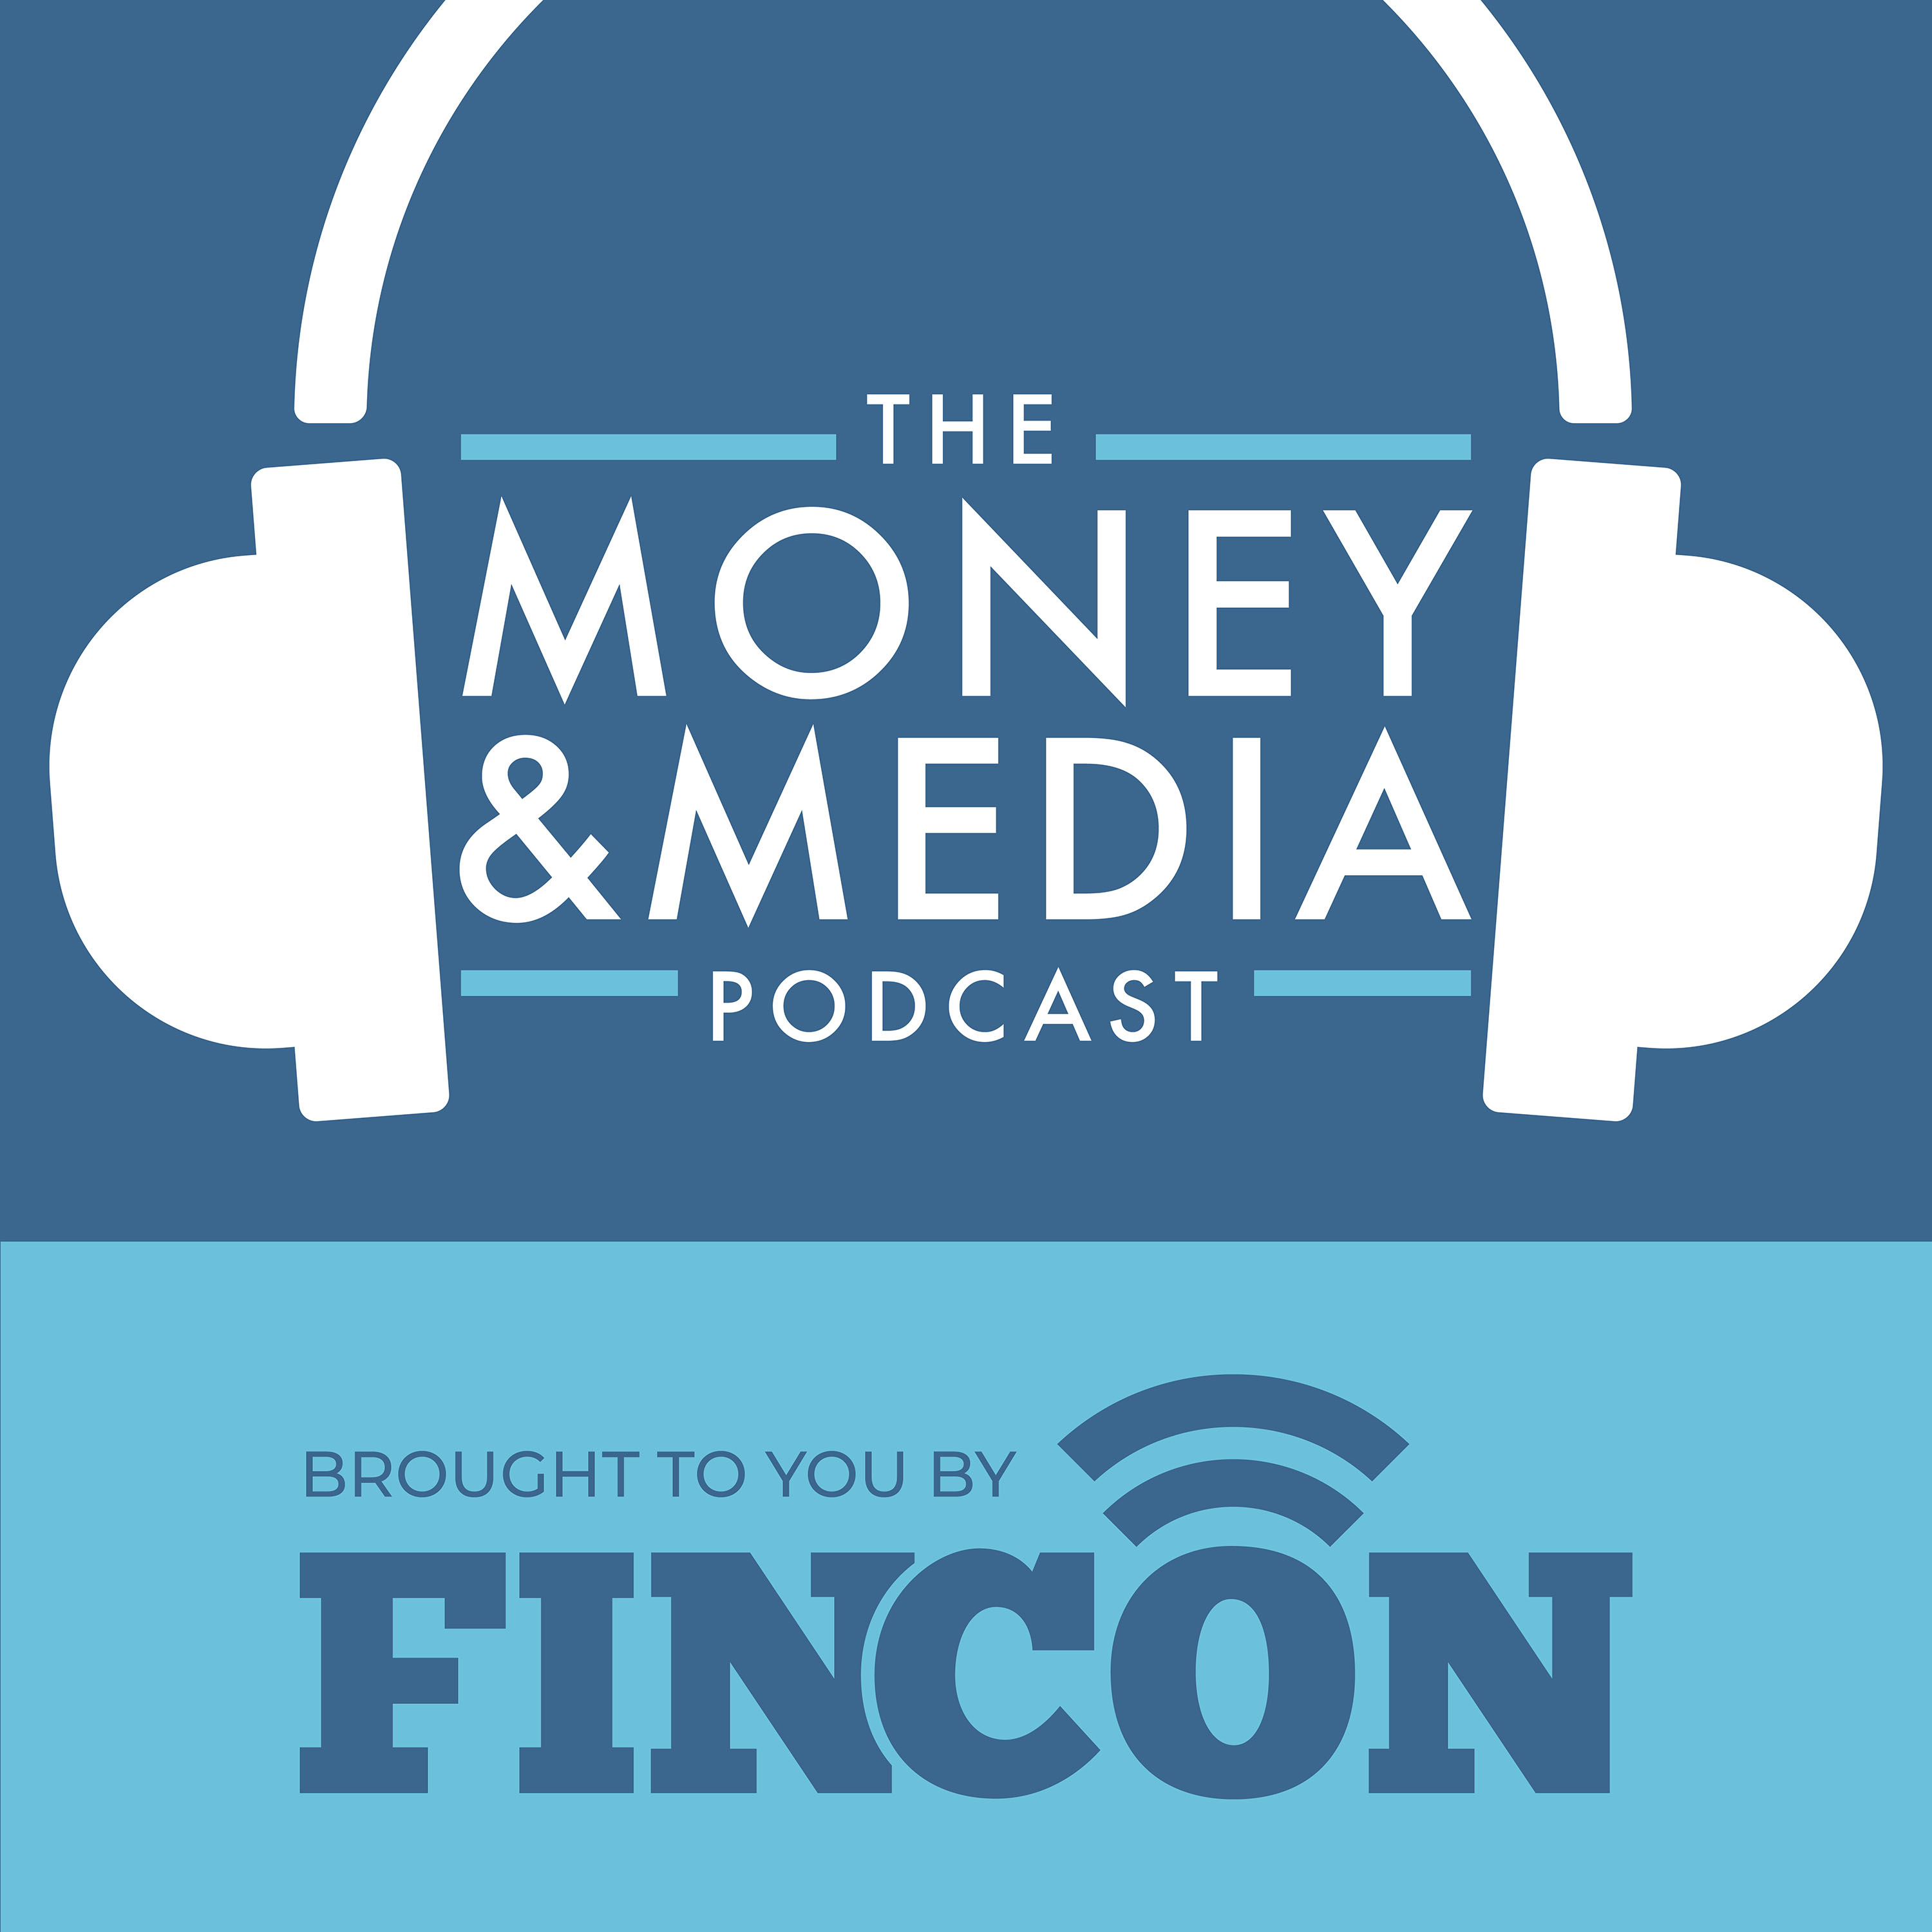 Money and Media Podcast presented by FinCon show art